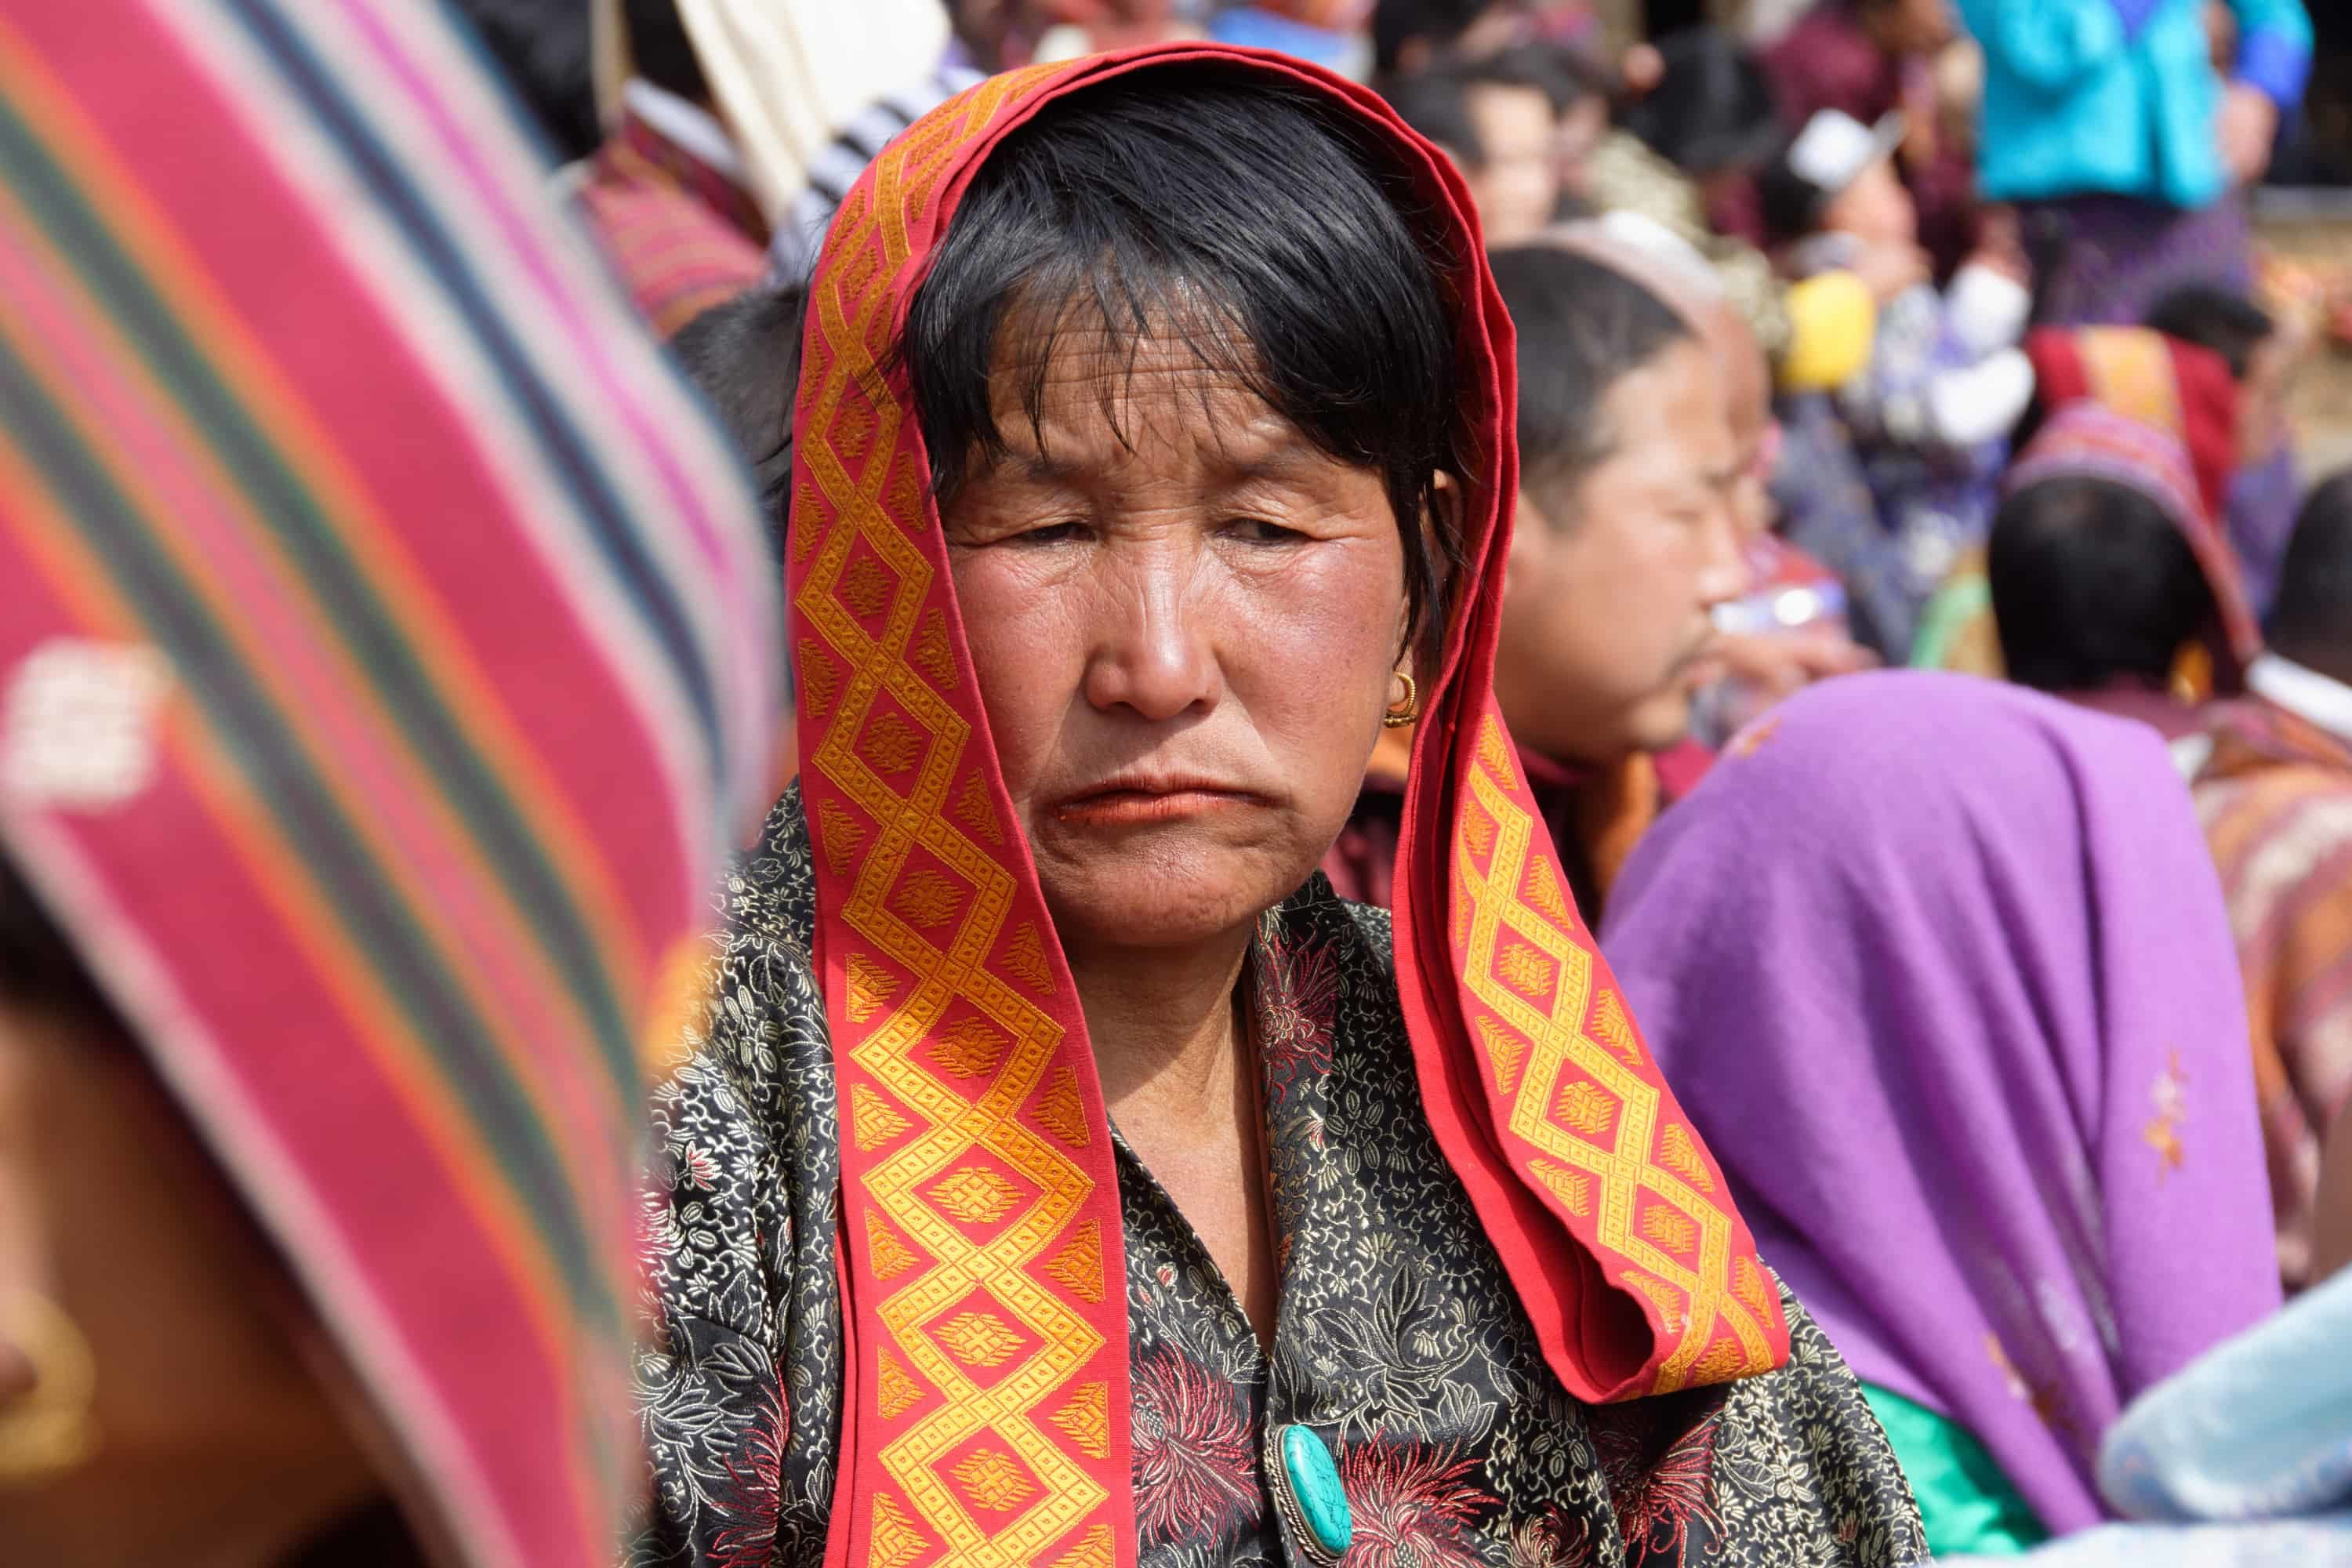 Traditional Dress at Paro Festival in Bhutan